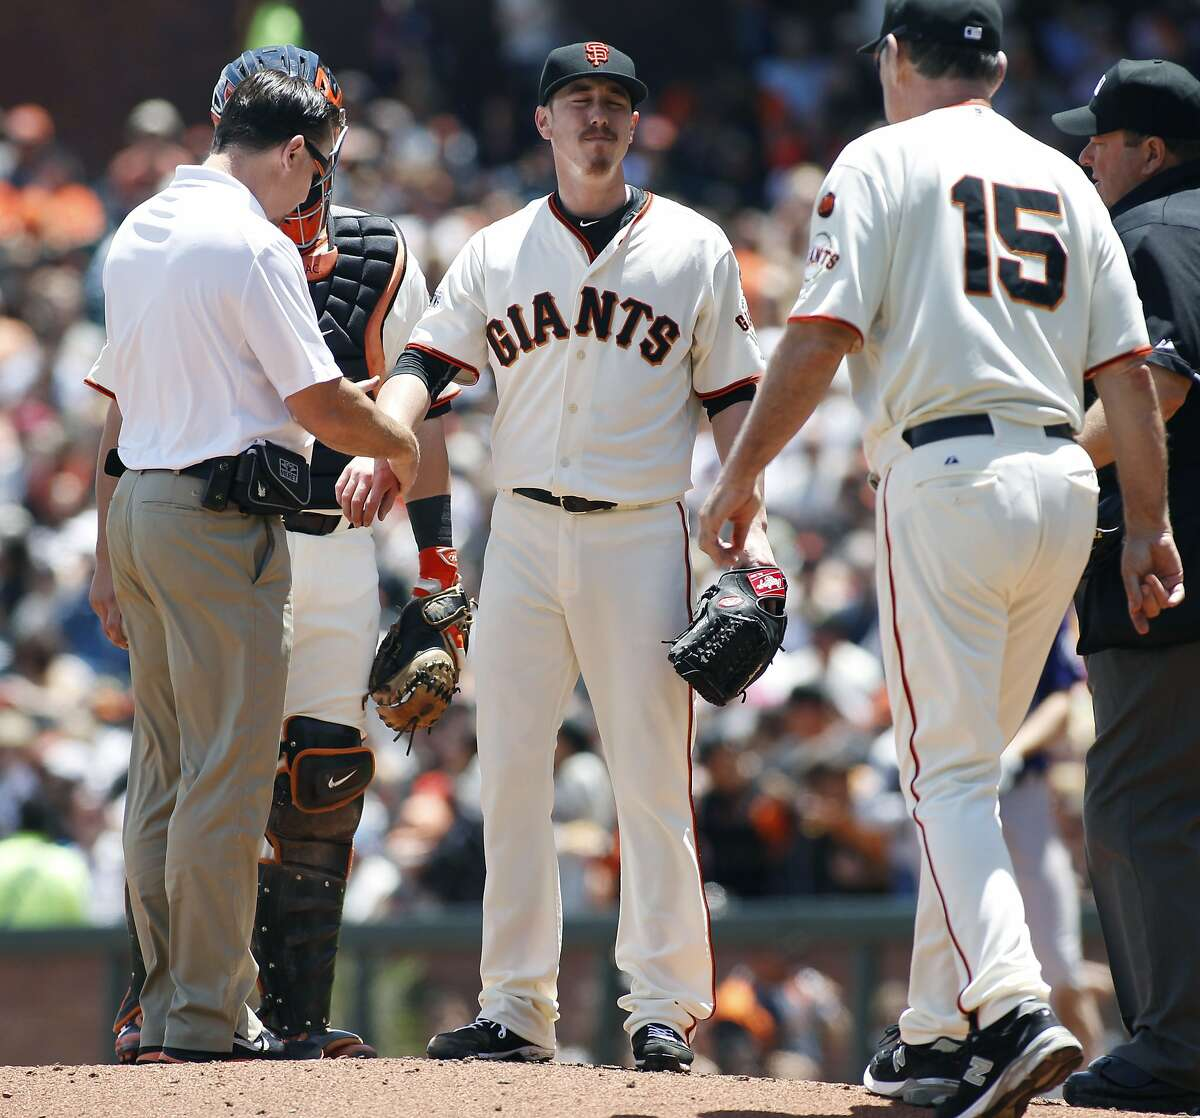 It seems like this season will be the end of the line for Tim Lincecum.